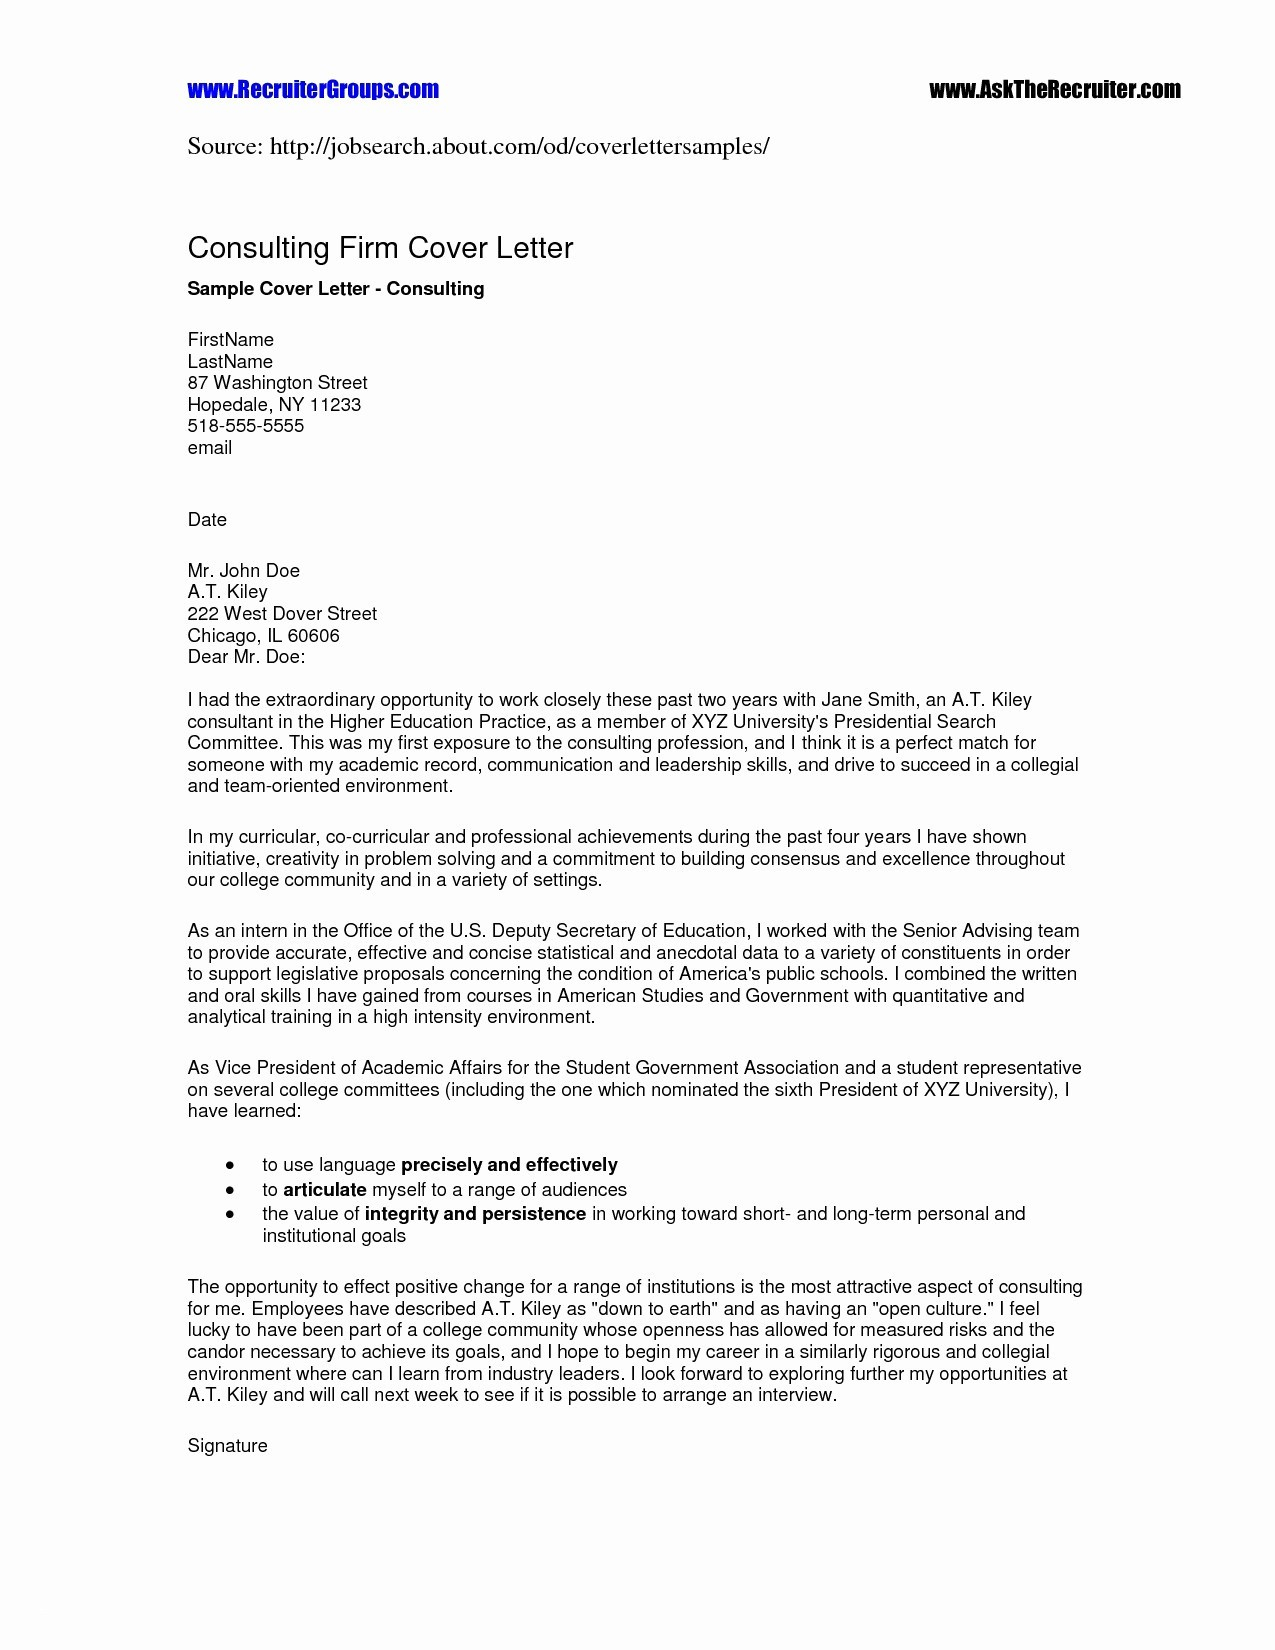 Awesome Cover Letter Template - My First Resume Fresh Janitor Resume Awesome Cover Letter Vs Resume